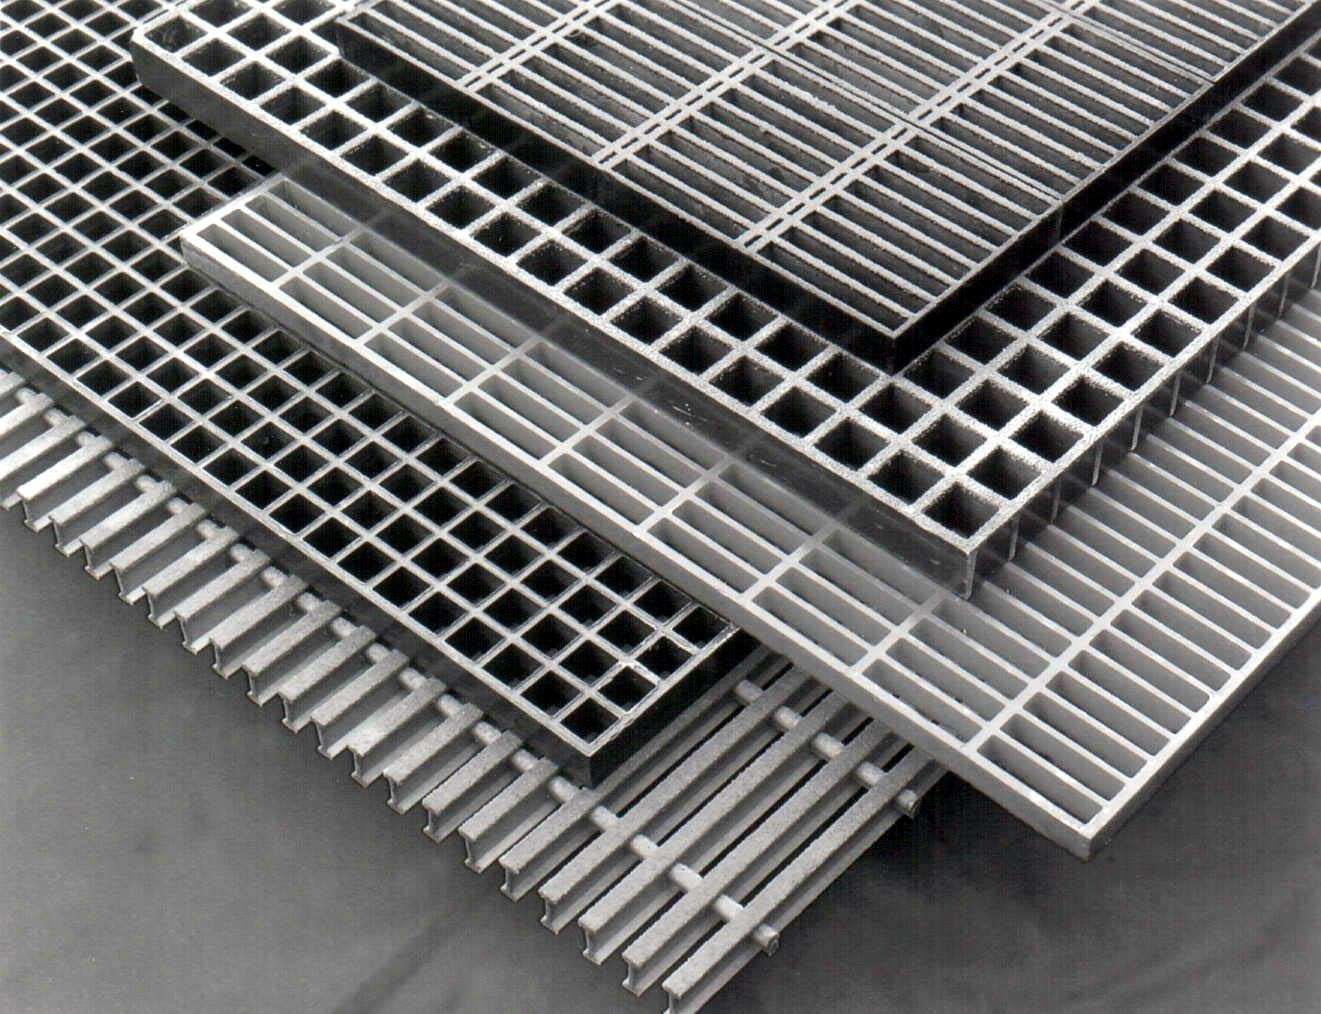 Steel Gratings Exporters India Id 1378800